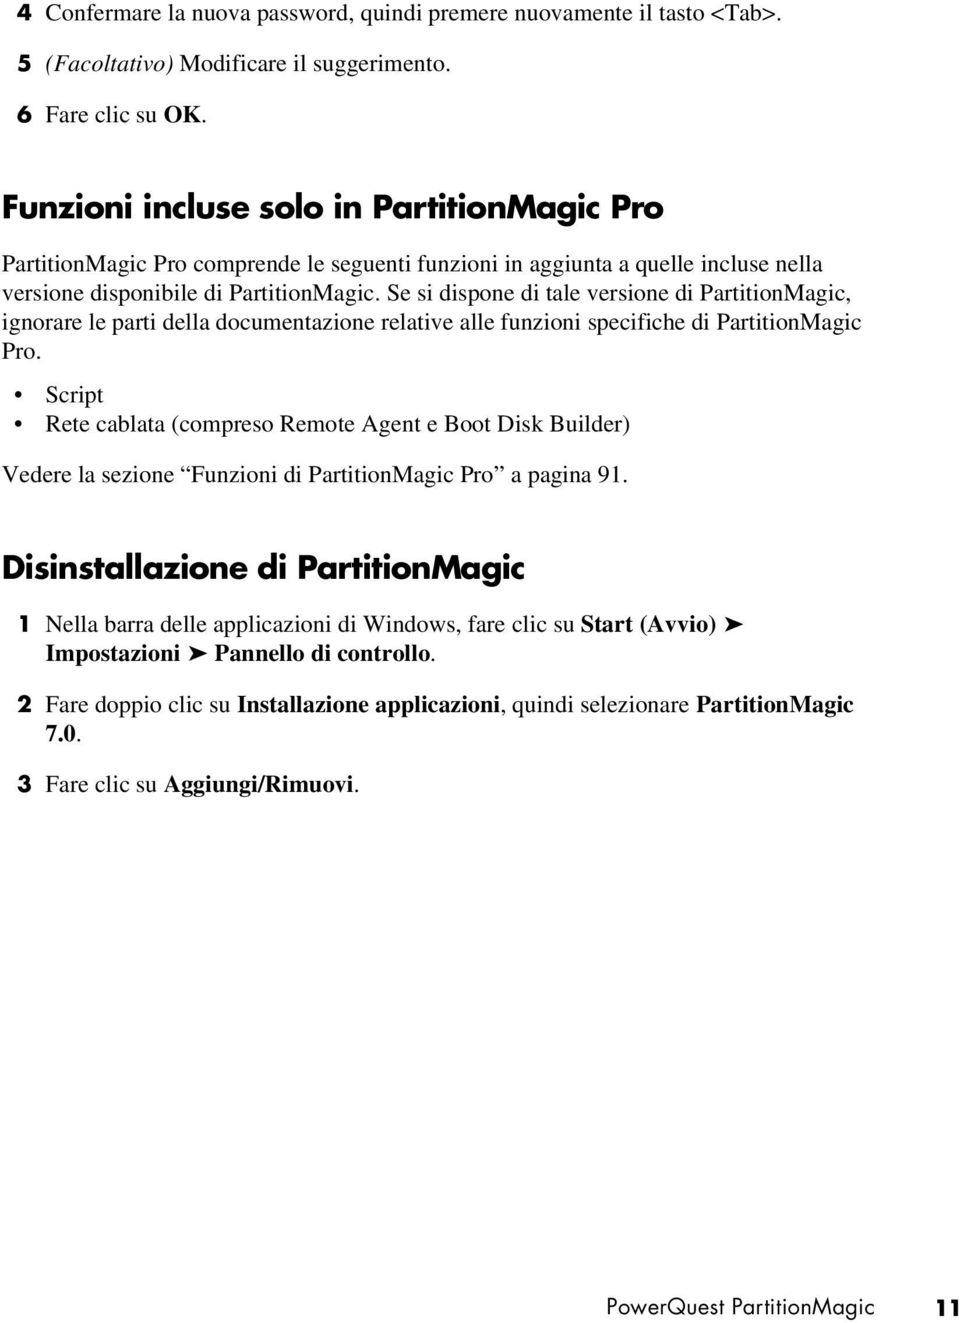 Se si dispone di tale versione di PartitionMagic, ignorare le parti della documentazione relative alle funzioni specifiche di PartitionMagic Pro.